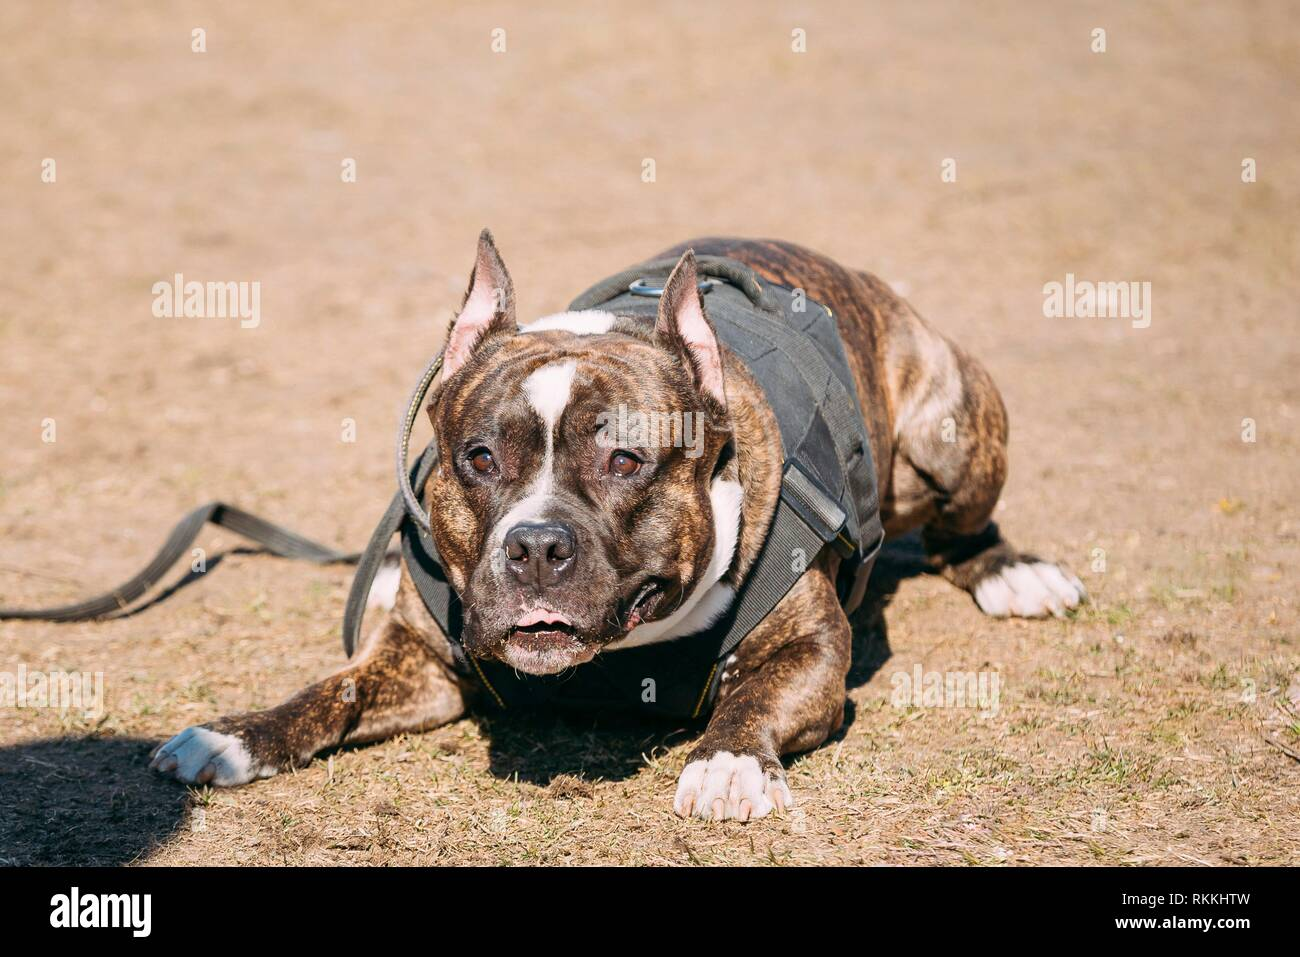 Dog American Staffordshire Terrier On Training Outdoor. - Stock Image